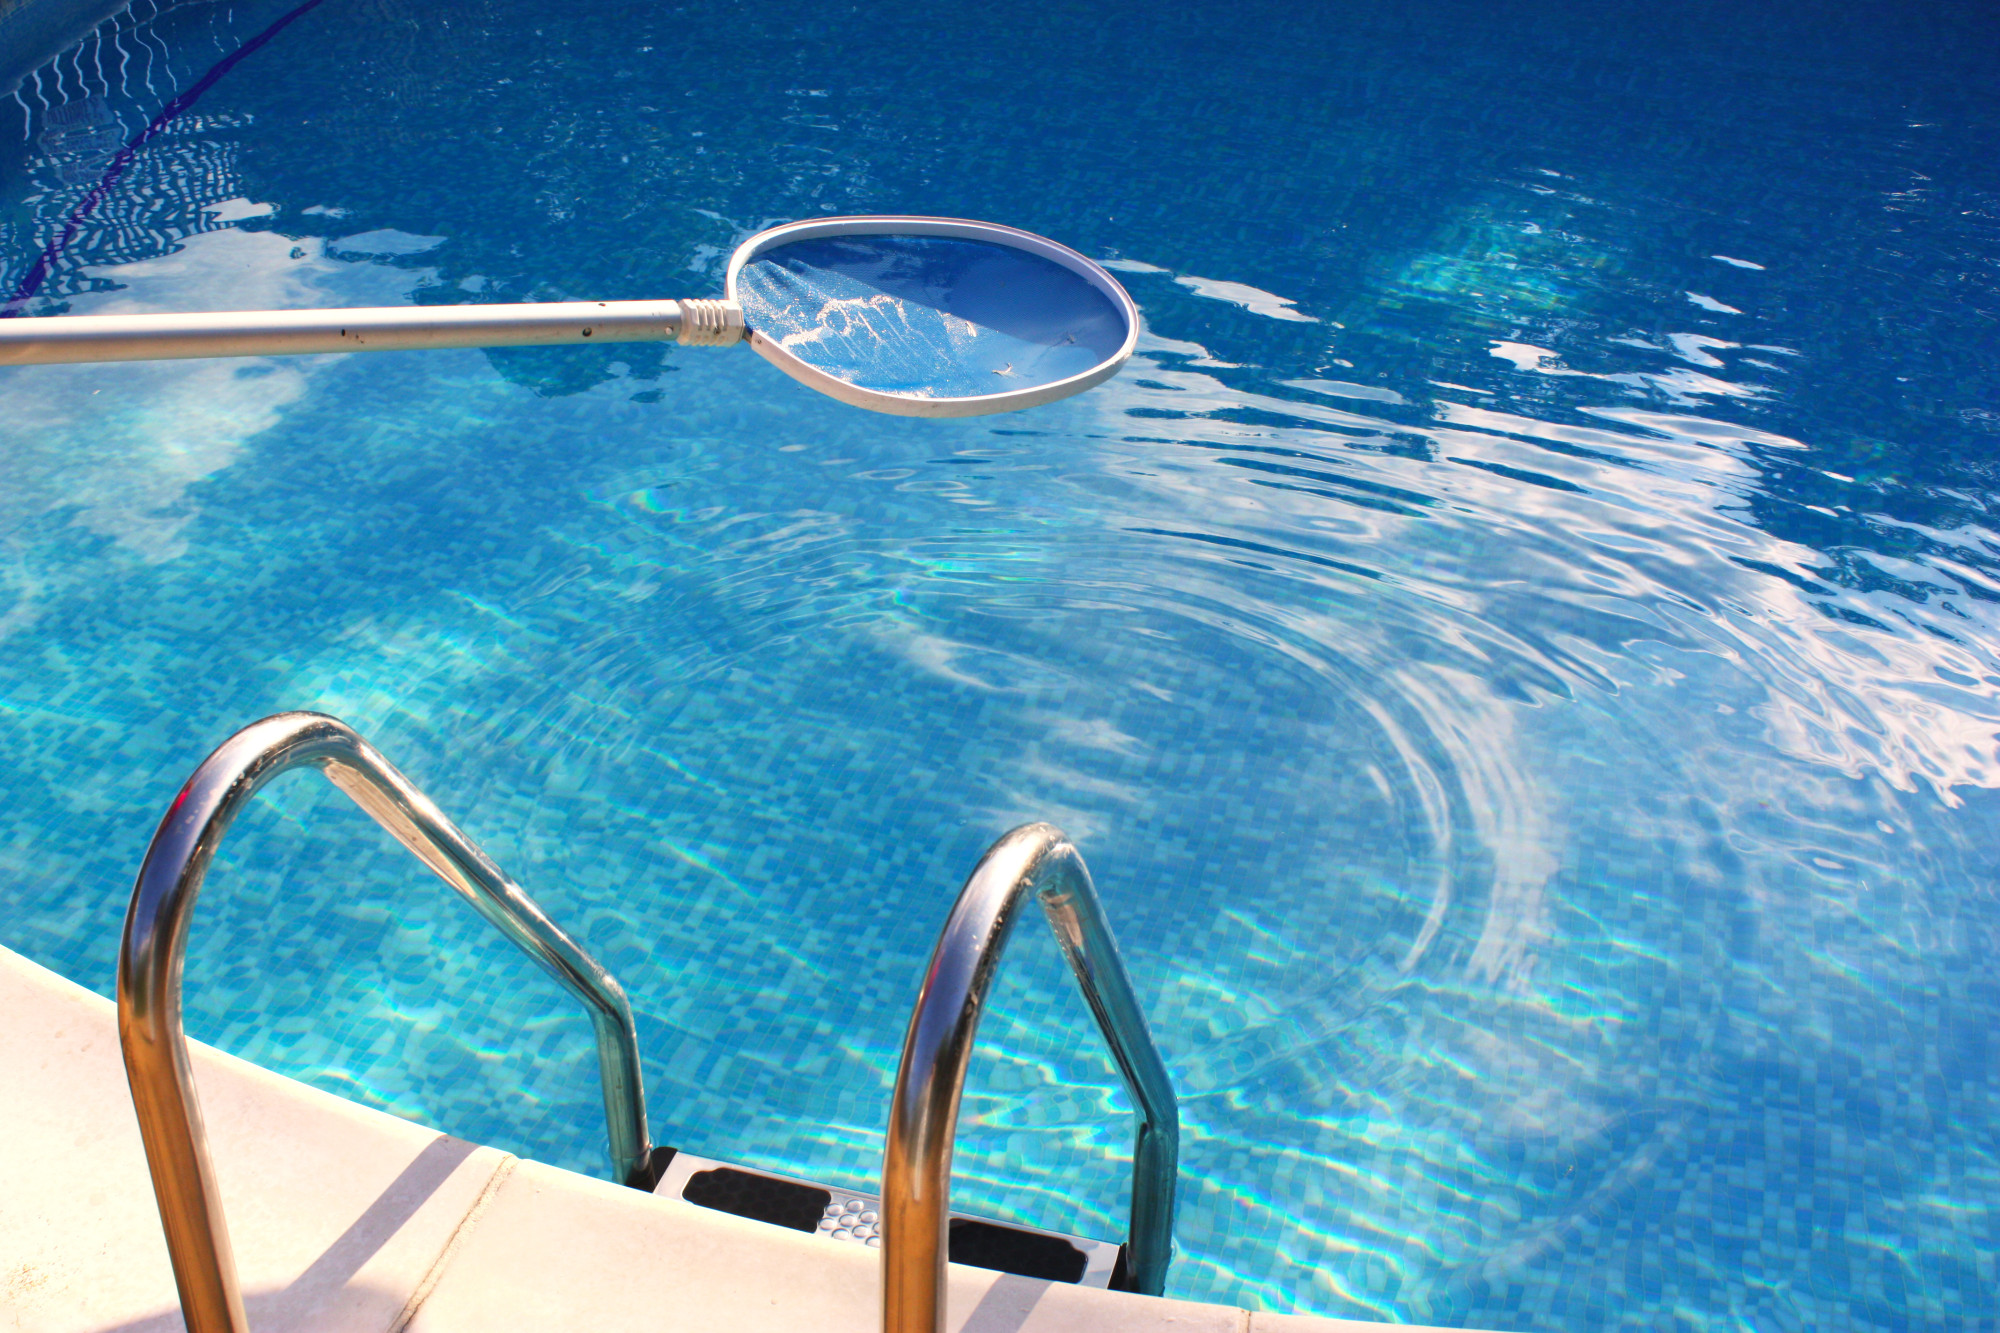 Pool Cleaning Made Easy: 8 Tips That Lead to a Spick and Span Clean